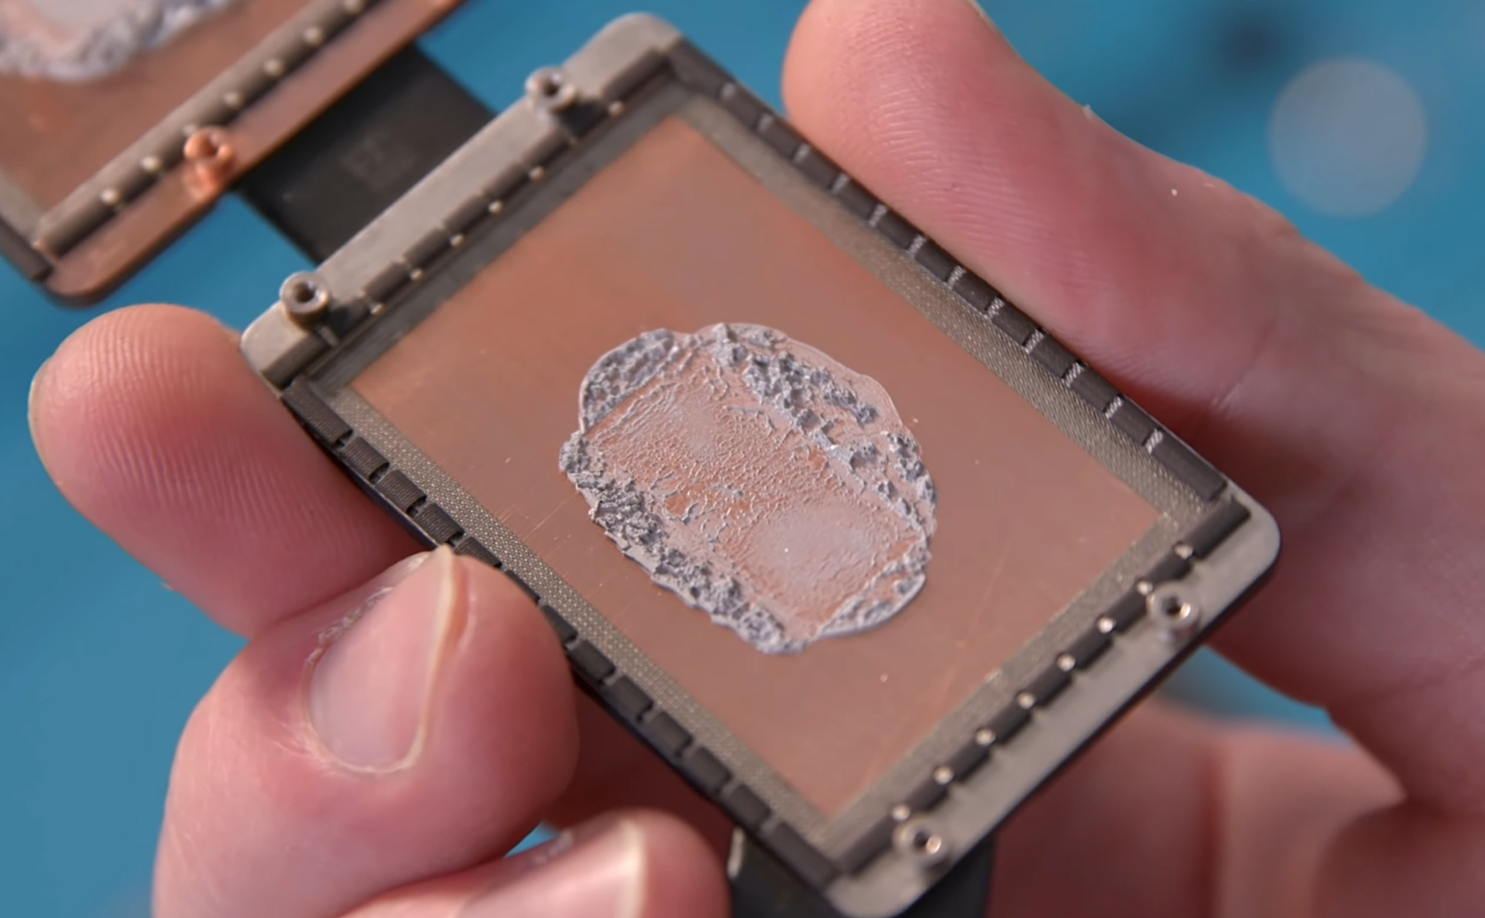 The 2019 model feature brand new thermal paste on its internals (Source: Snazzy Labs)